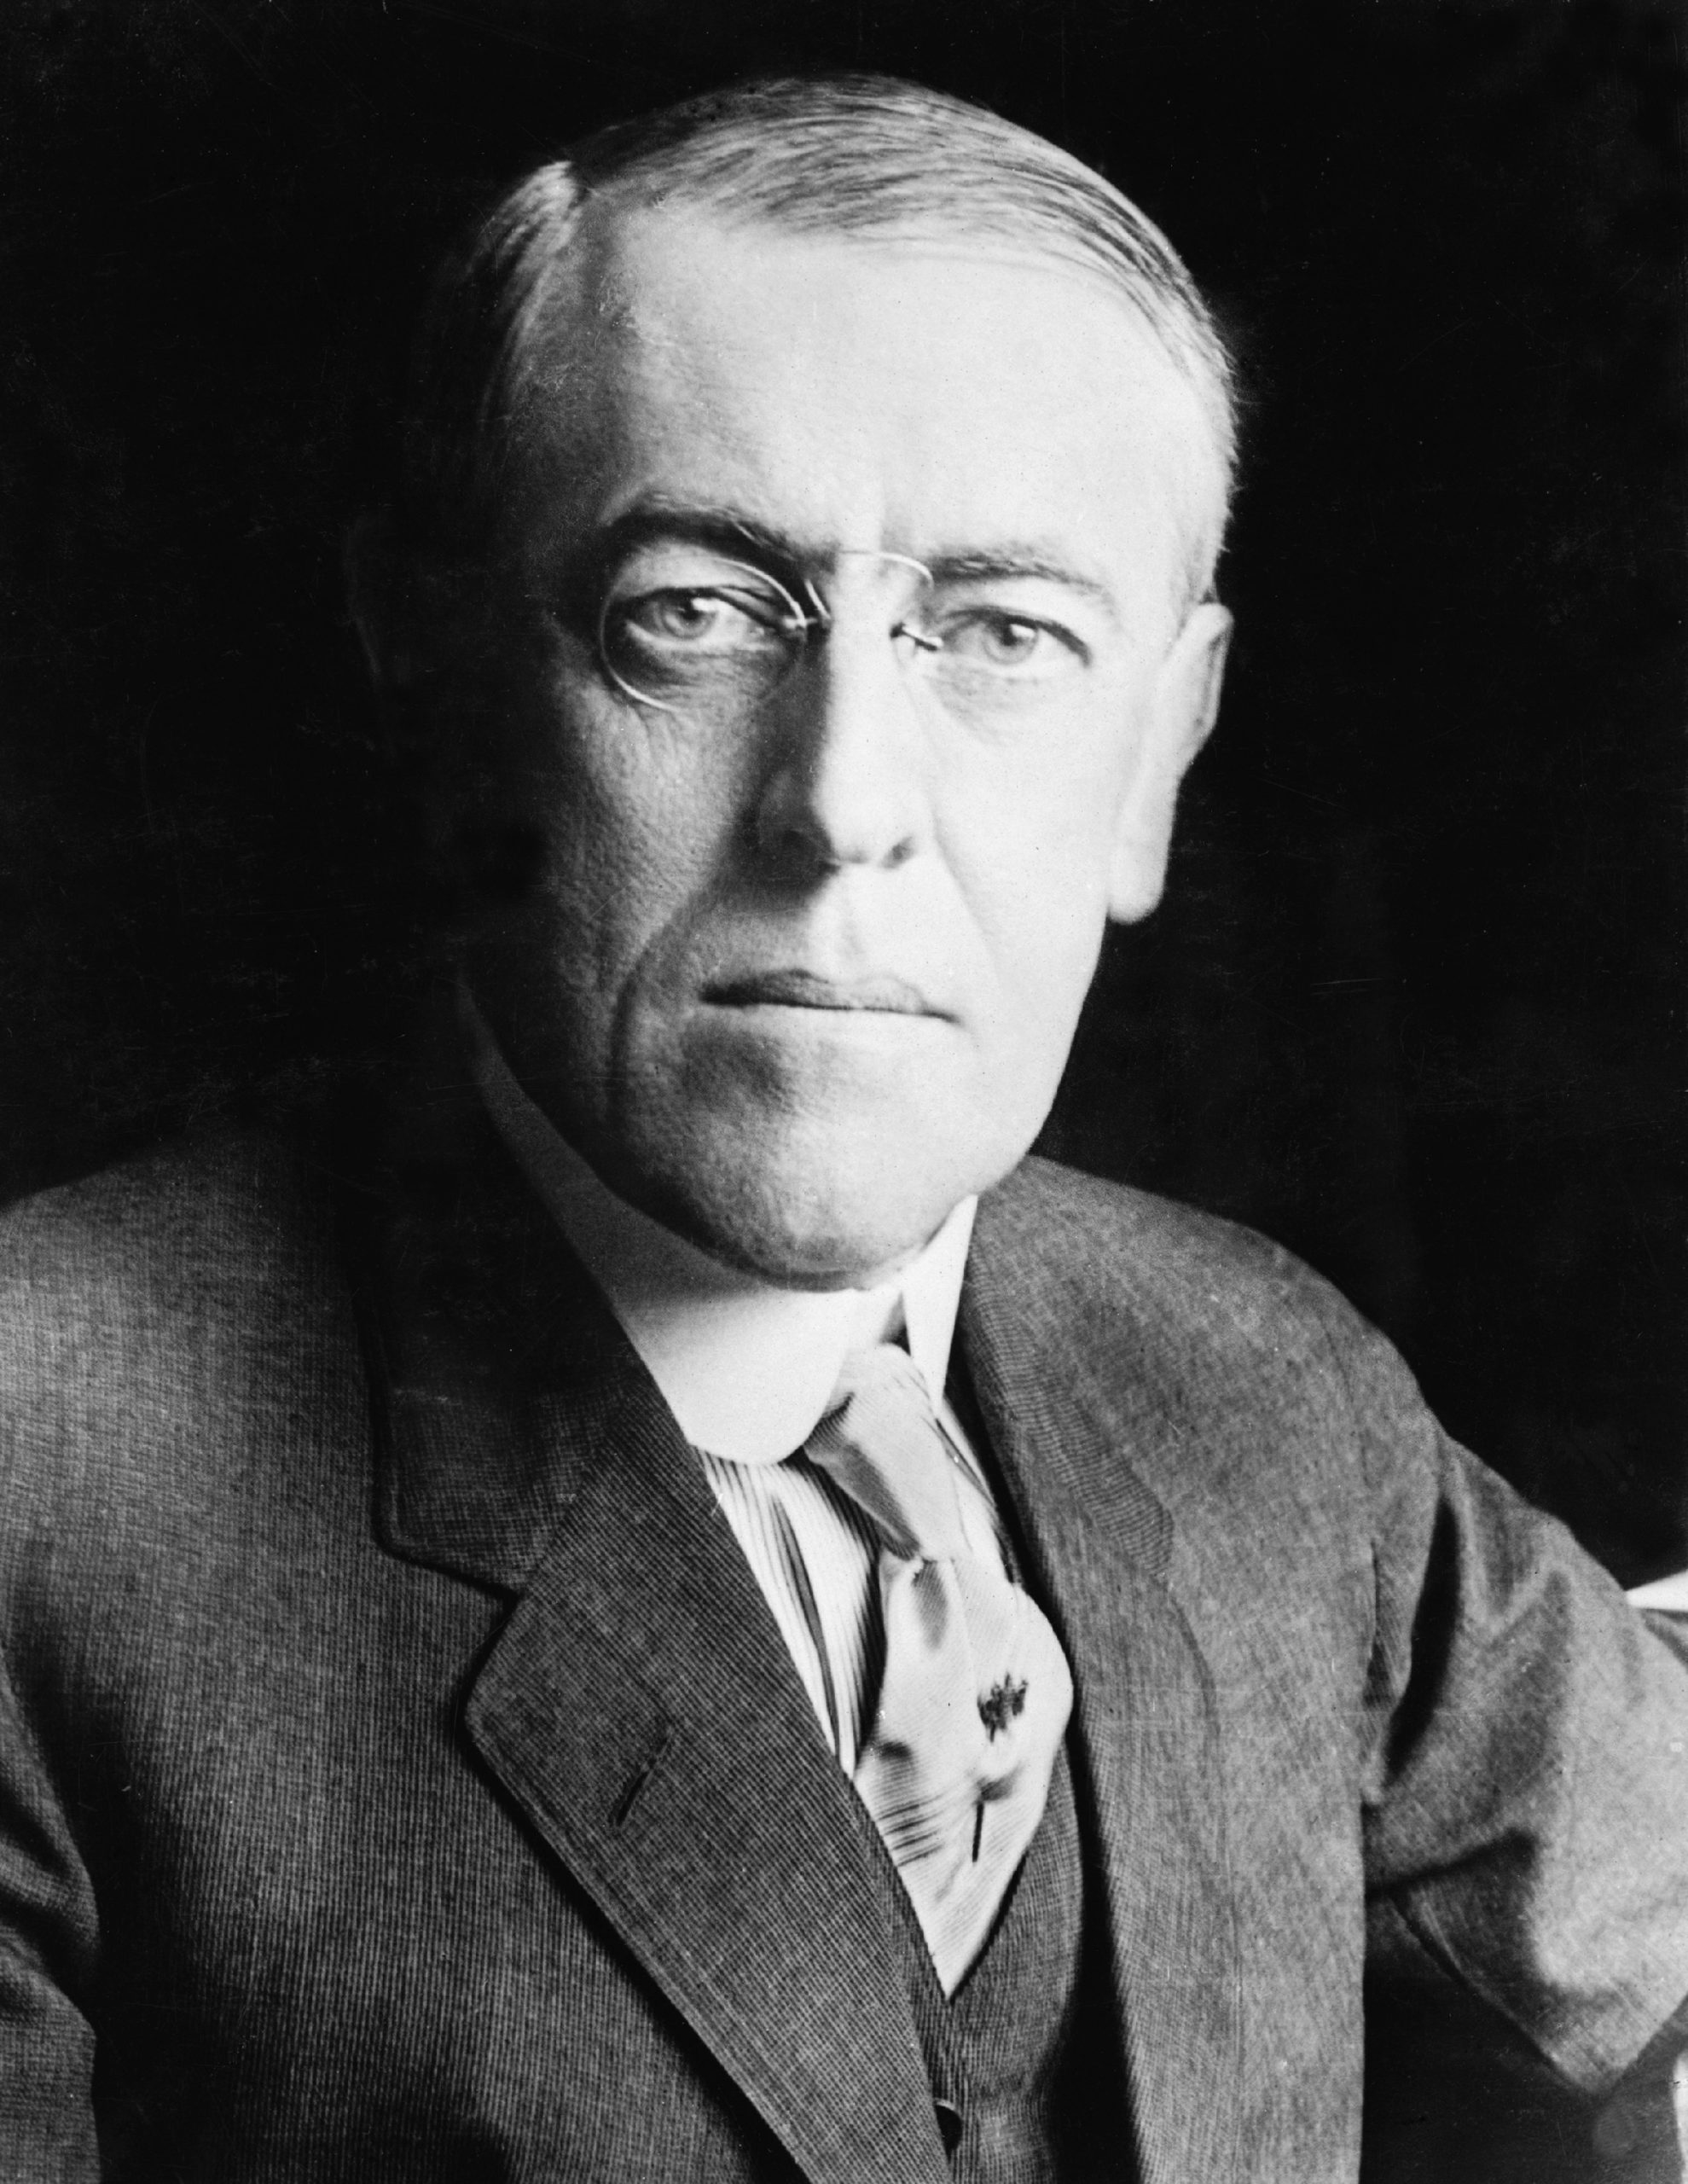 """He, a leader of the Progressive Movement, was the 28th President of the United States (1913-1921). After a policy of neutrality at the outbreak of World War I, he led America into war in order to """"make the world safe for democracy."""""""